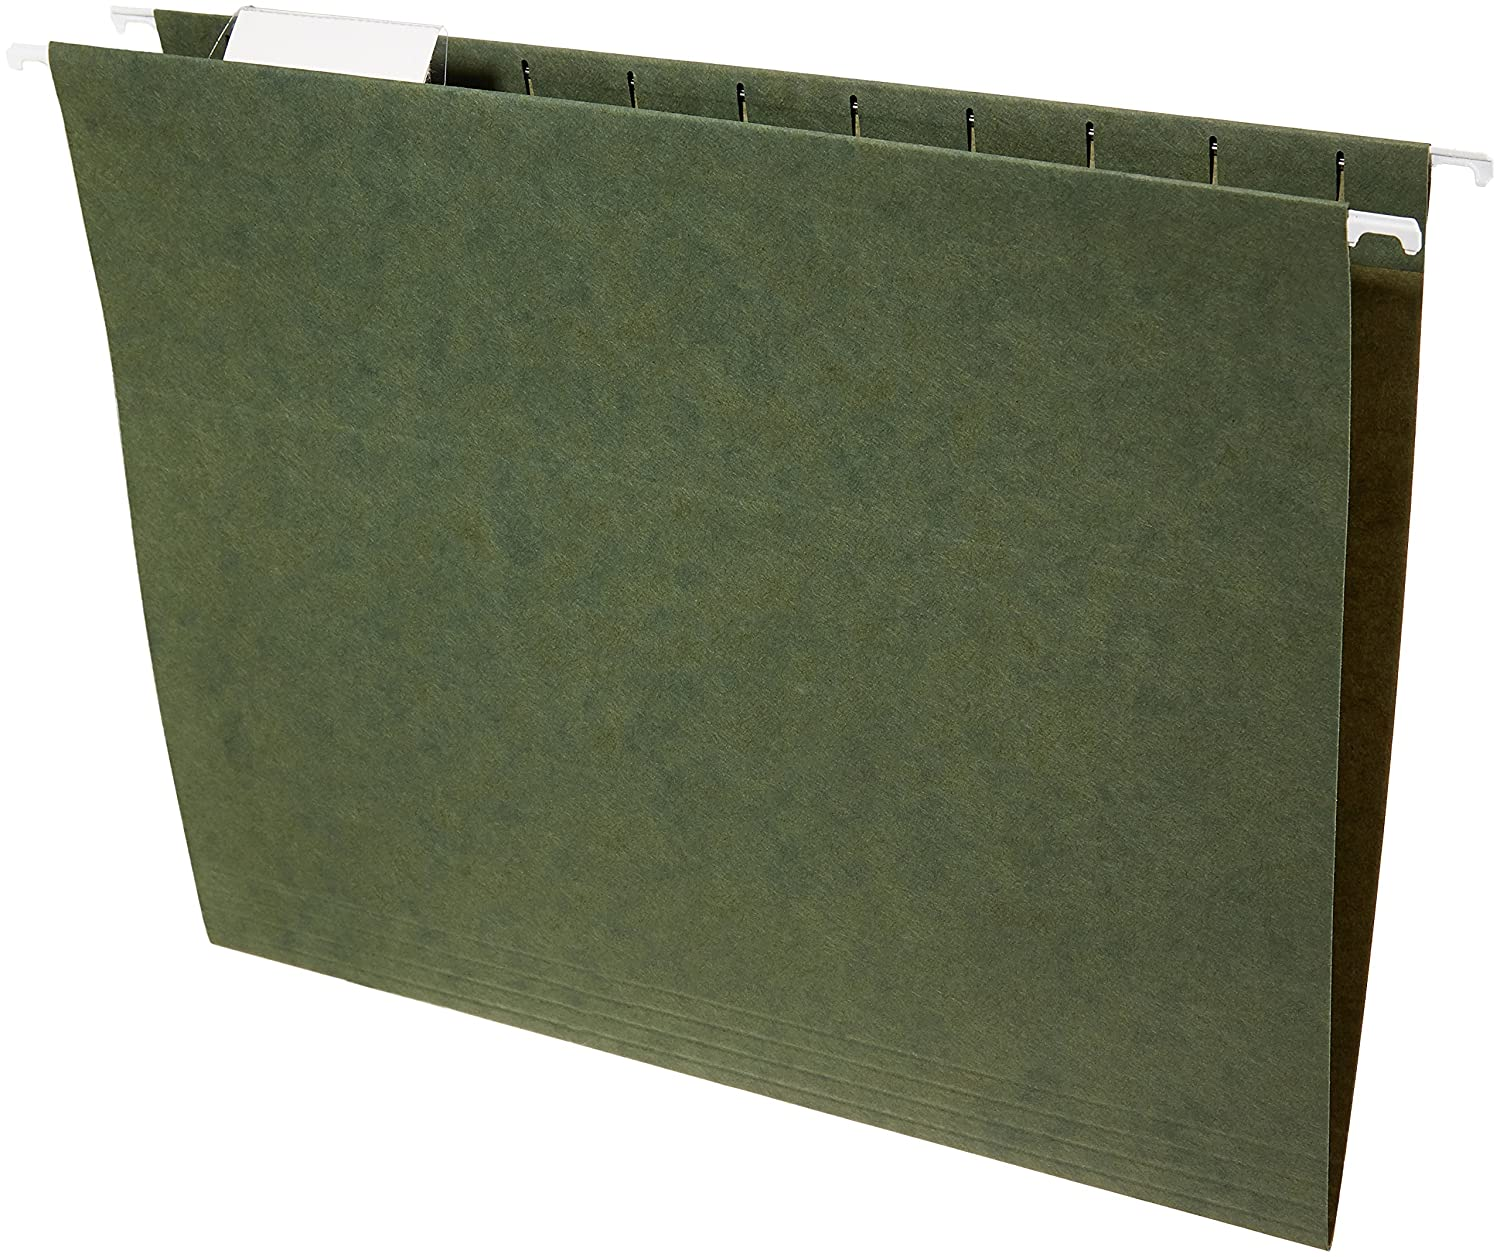 Amazon.com : AmazonBasics Hanging File Folders   Letter Size, Green,  25 Pack : Office Products